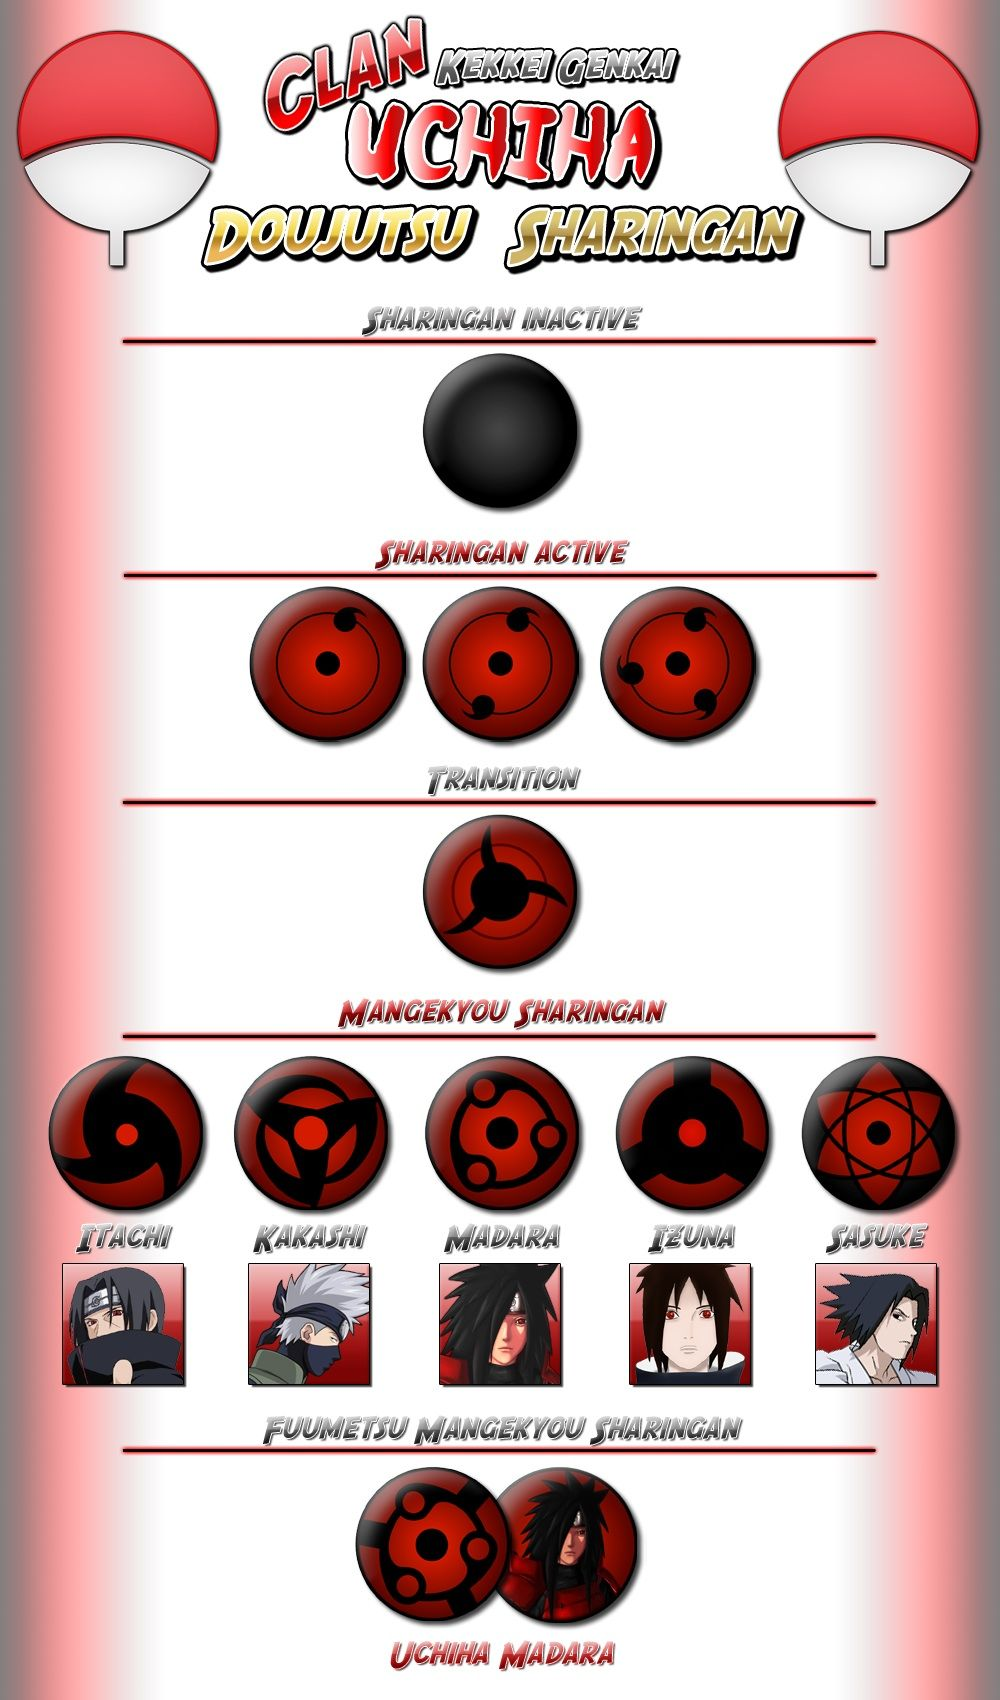 Types of sharingan